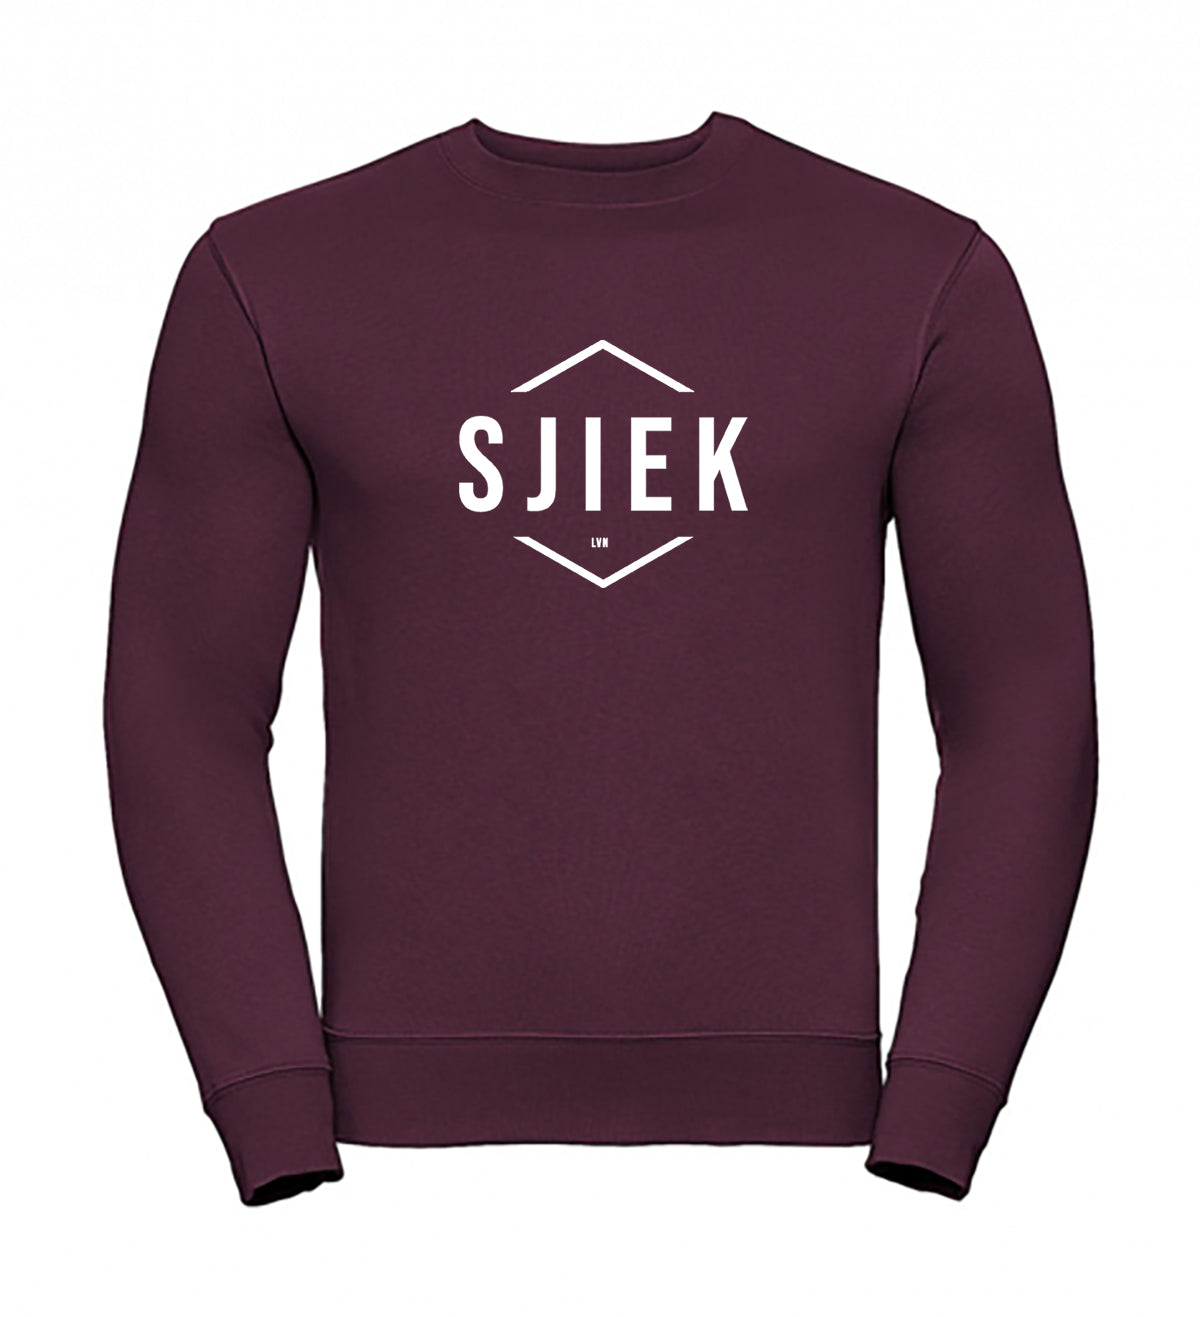 SJIEK trui SJIEK sweater SJIEK burgundy